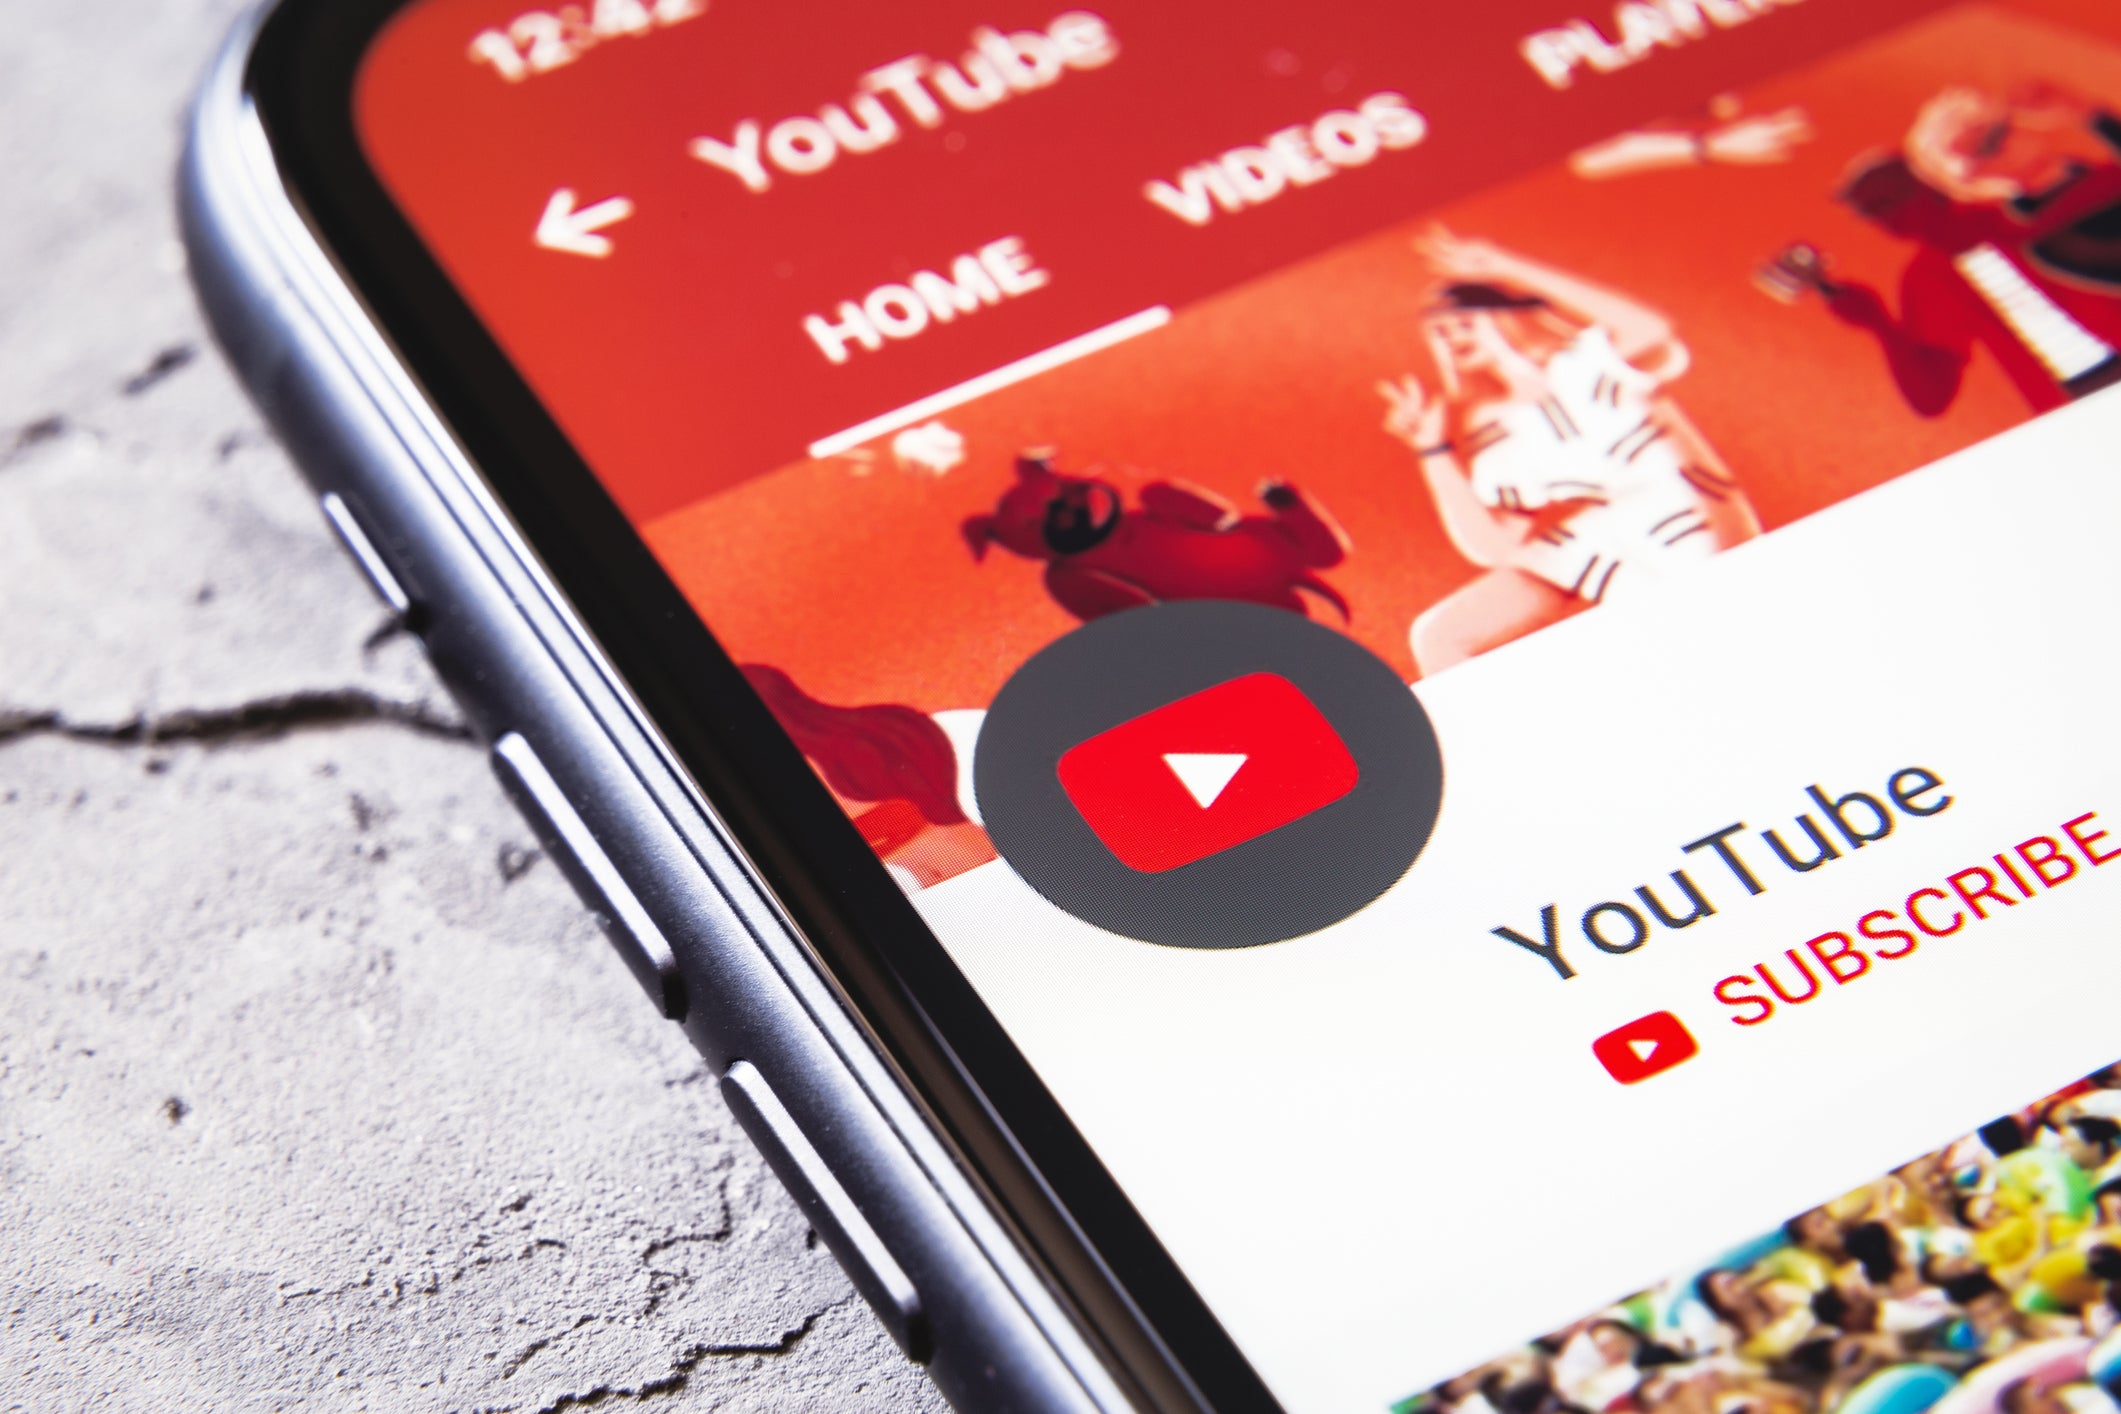 Image of article 'YouTube follows TikTok and lets users experiments with uploading 15-second clips'